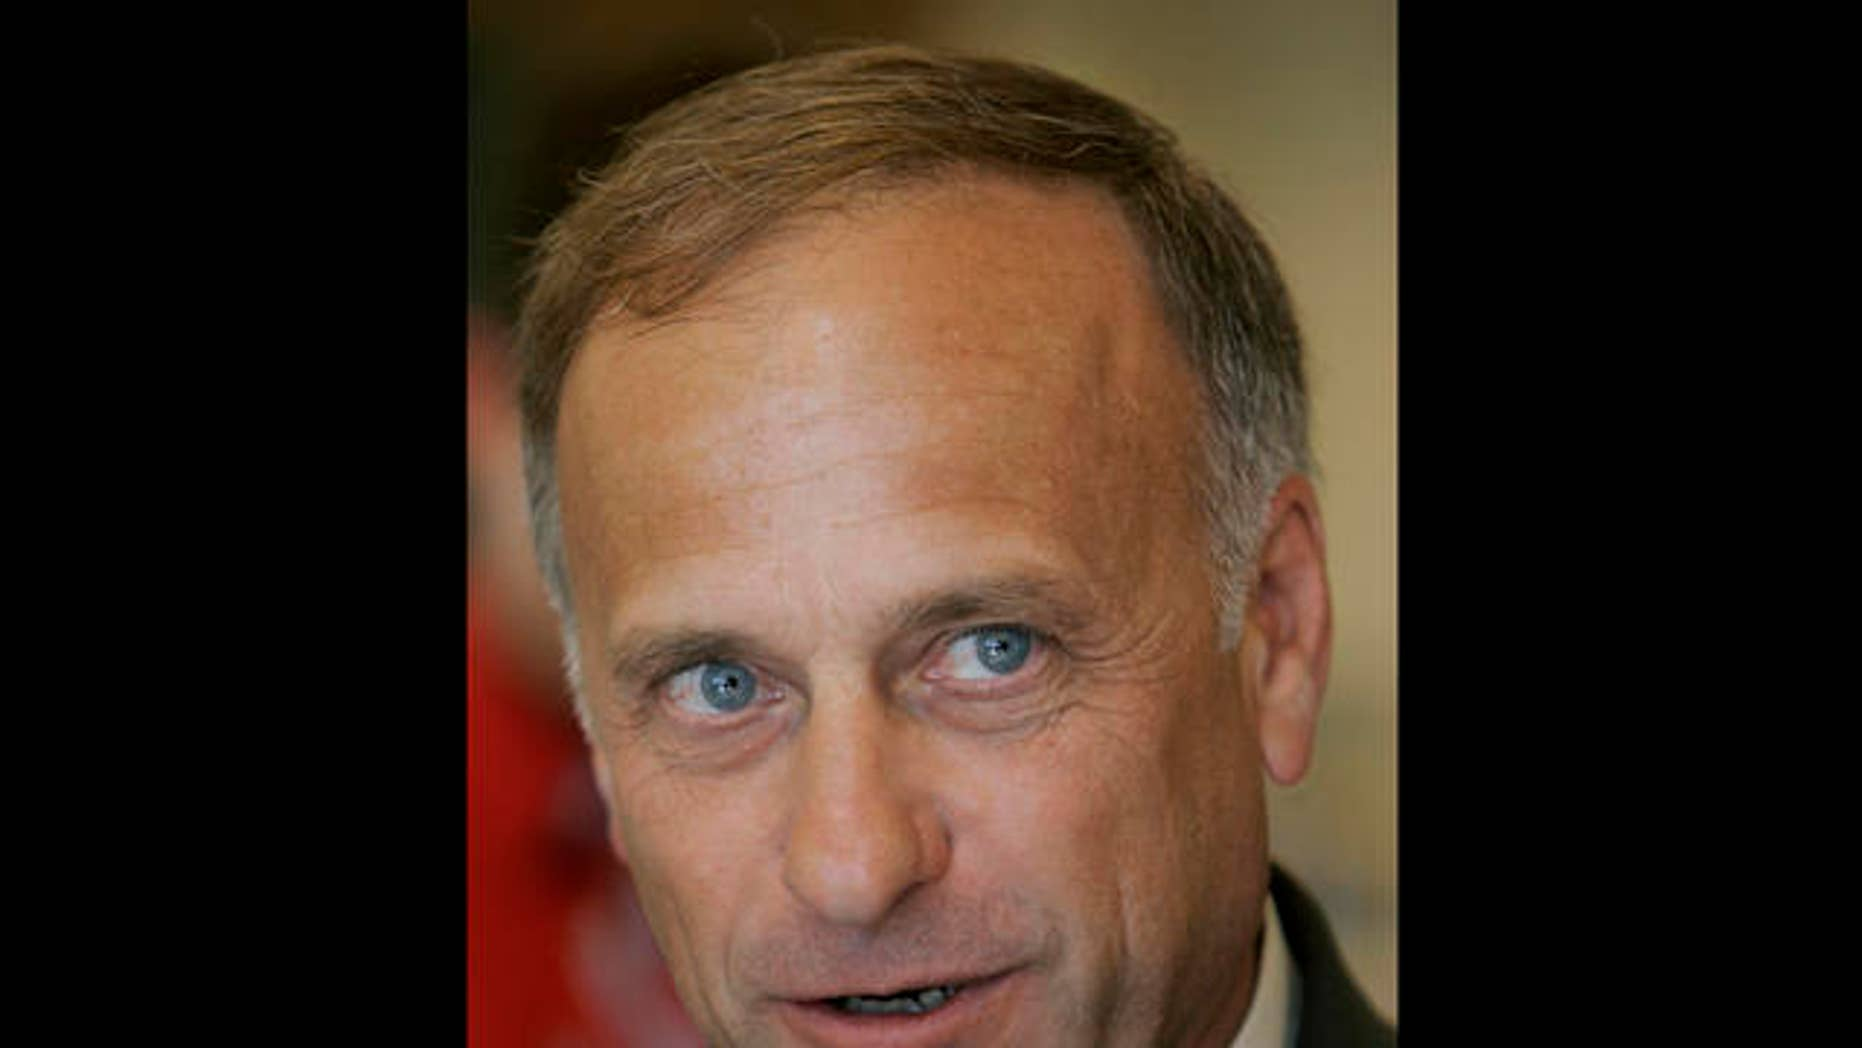 U.S. Rep. Steve King, R-Iowa, speaks to reporters following a farm bill congressional field hearing, Monday, July 31, 2006, at Dordt College in Sioux Center, Iowa. In his rural, western Iowa congressional district, King remains a popular two-term congressman. And his penchant for brash, and some say offensive, soundbites has helped King become something of a national spokesman for his party's far right wing. (AP Photo/Charlie Neibergall)